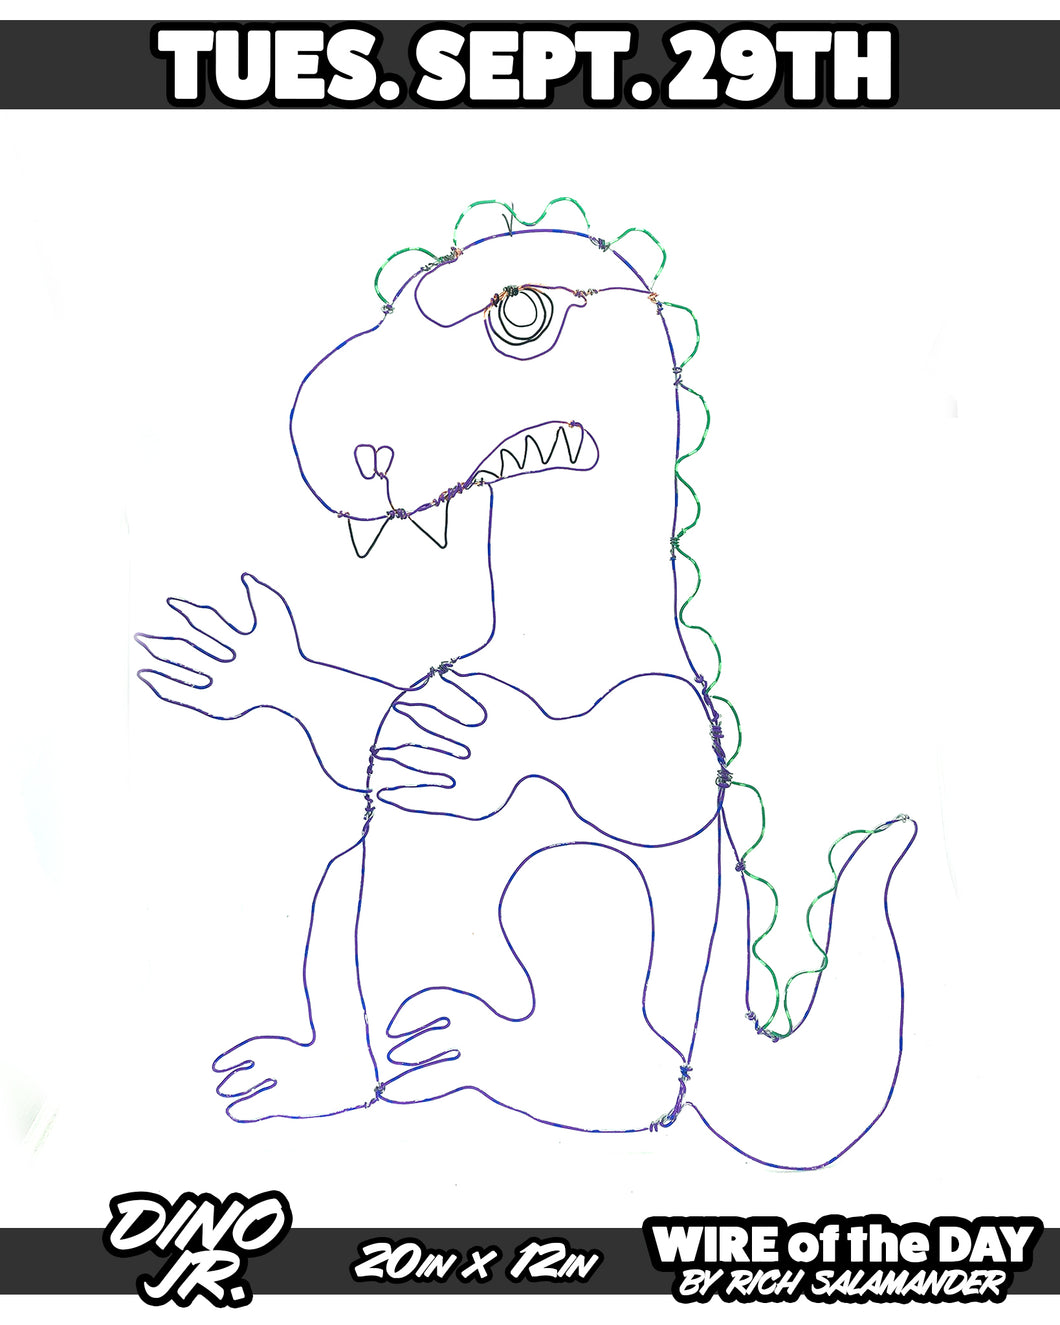 WIRE of the DAY DINO JR.